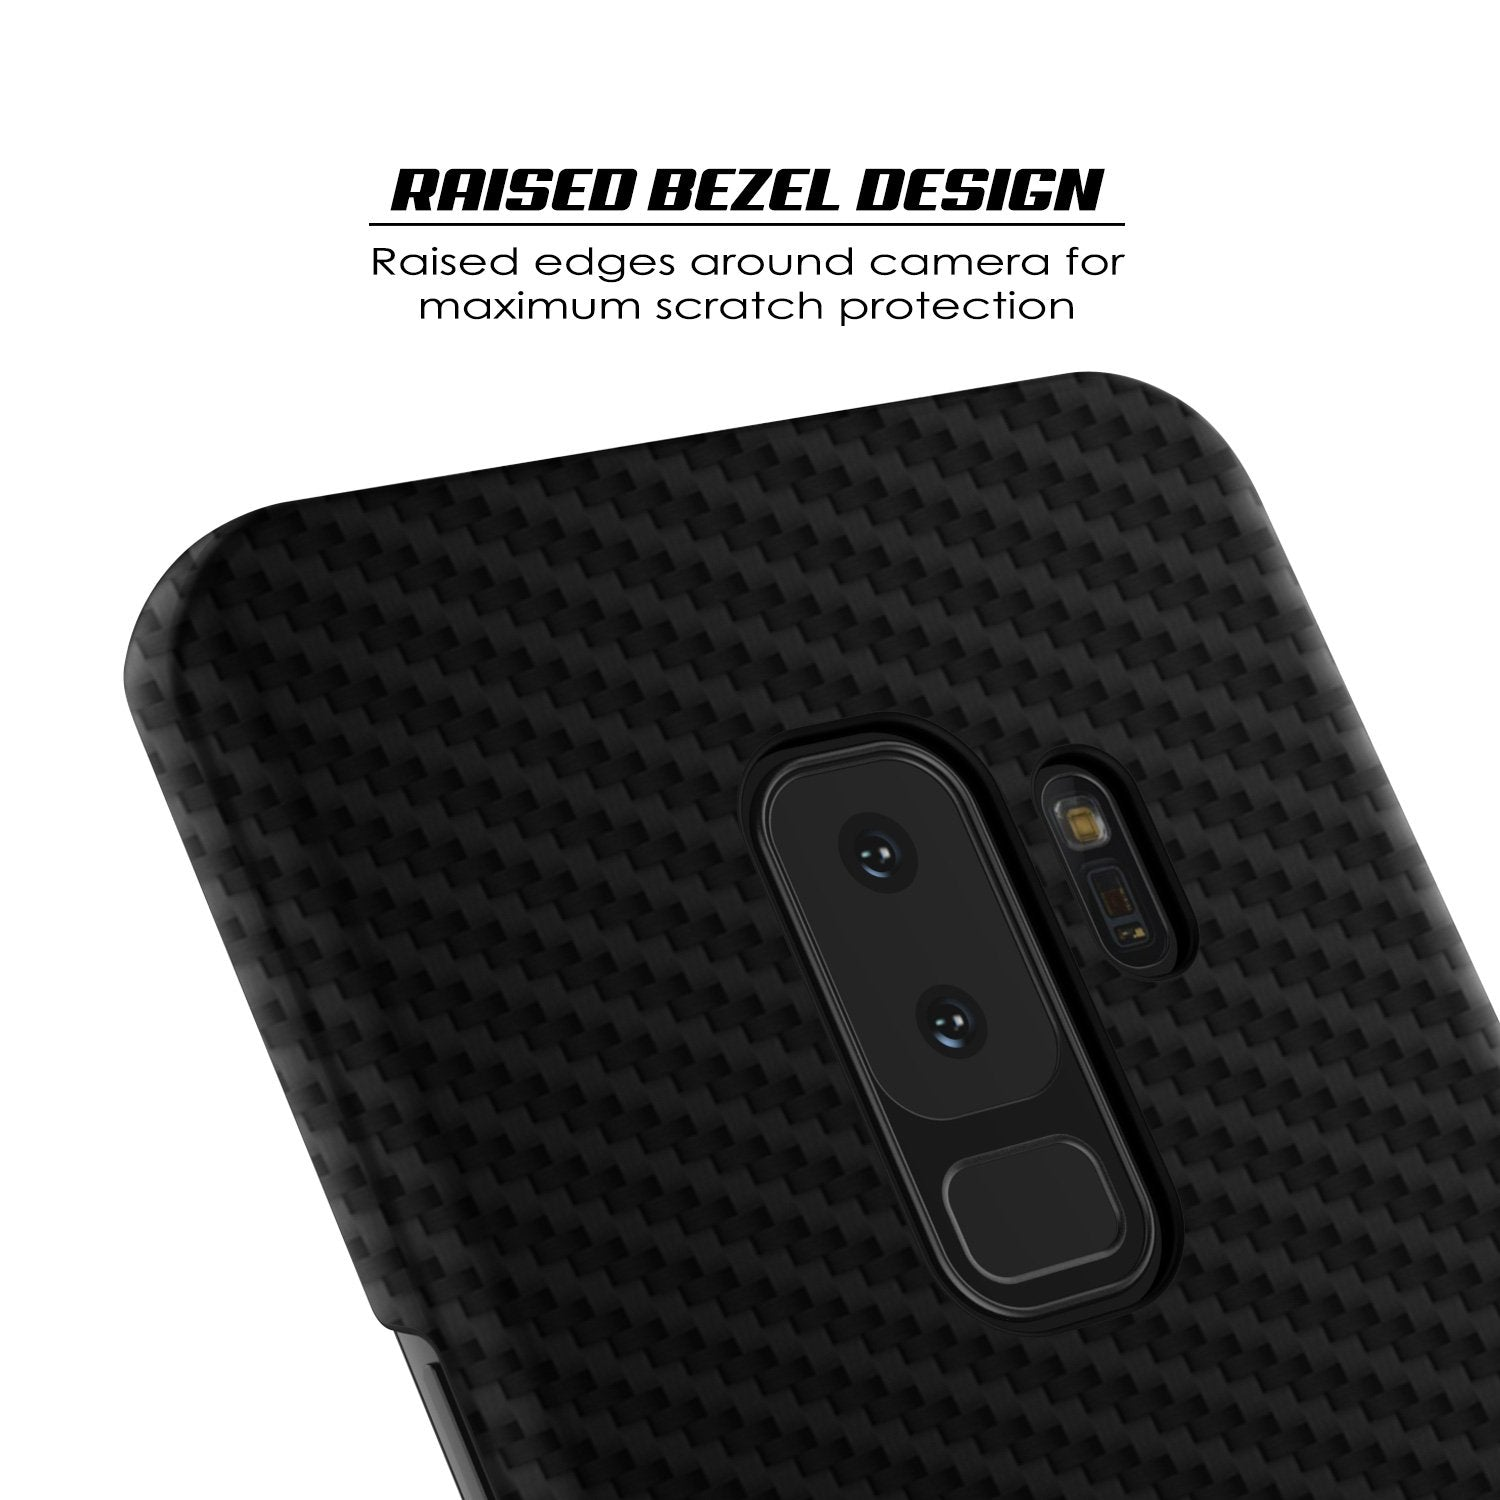 Galaxy S9 Plus Case, Punkcase Carbon Shield Ultra Thin Jet Black Cover